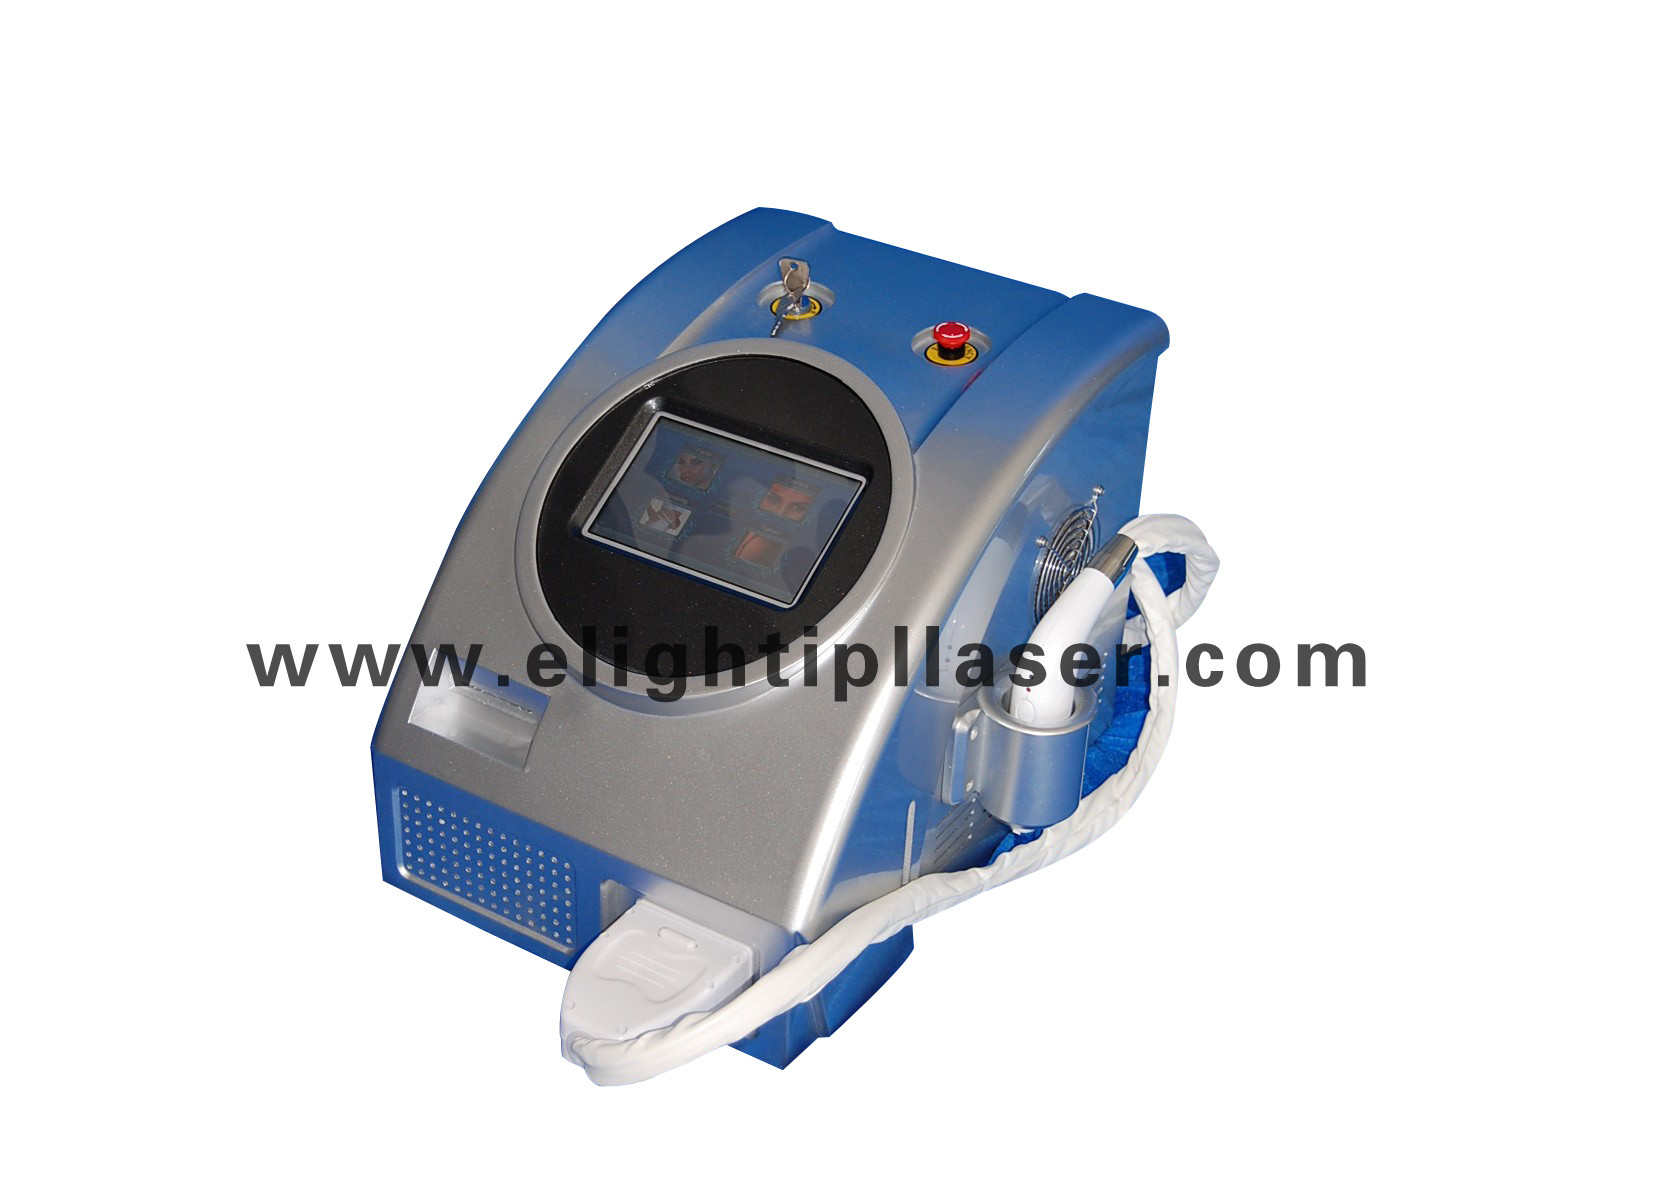 Collagen Renewal Skin Rejuvenation RF Beauty Machine With 8.4 Inch Screen